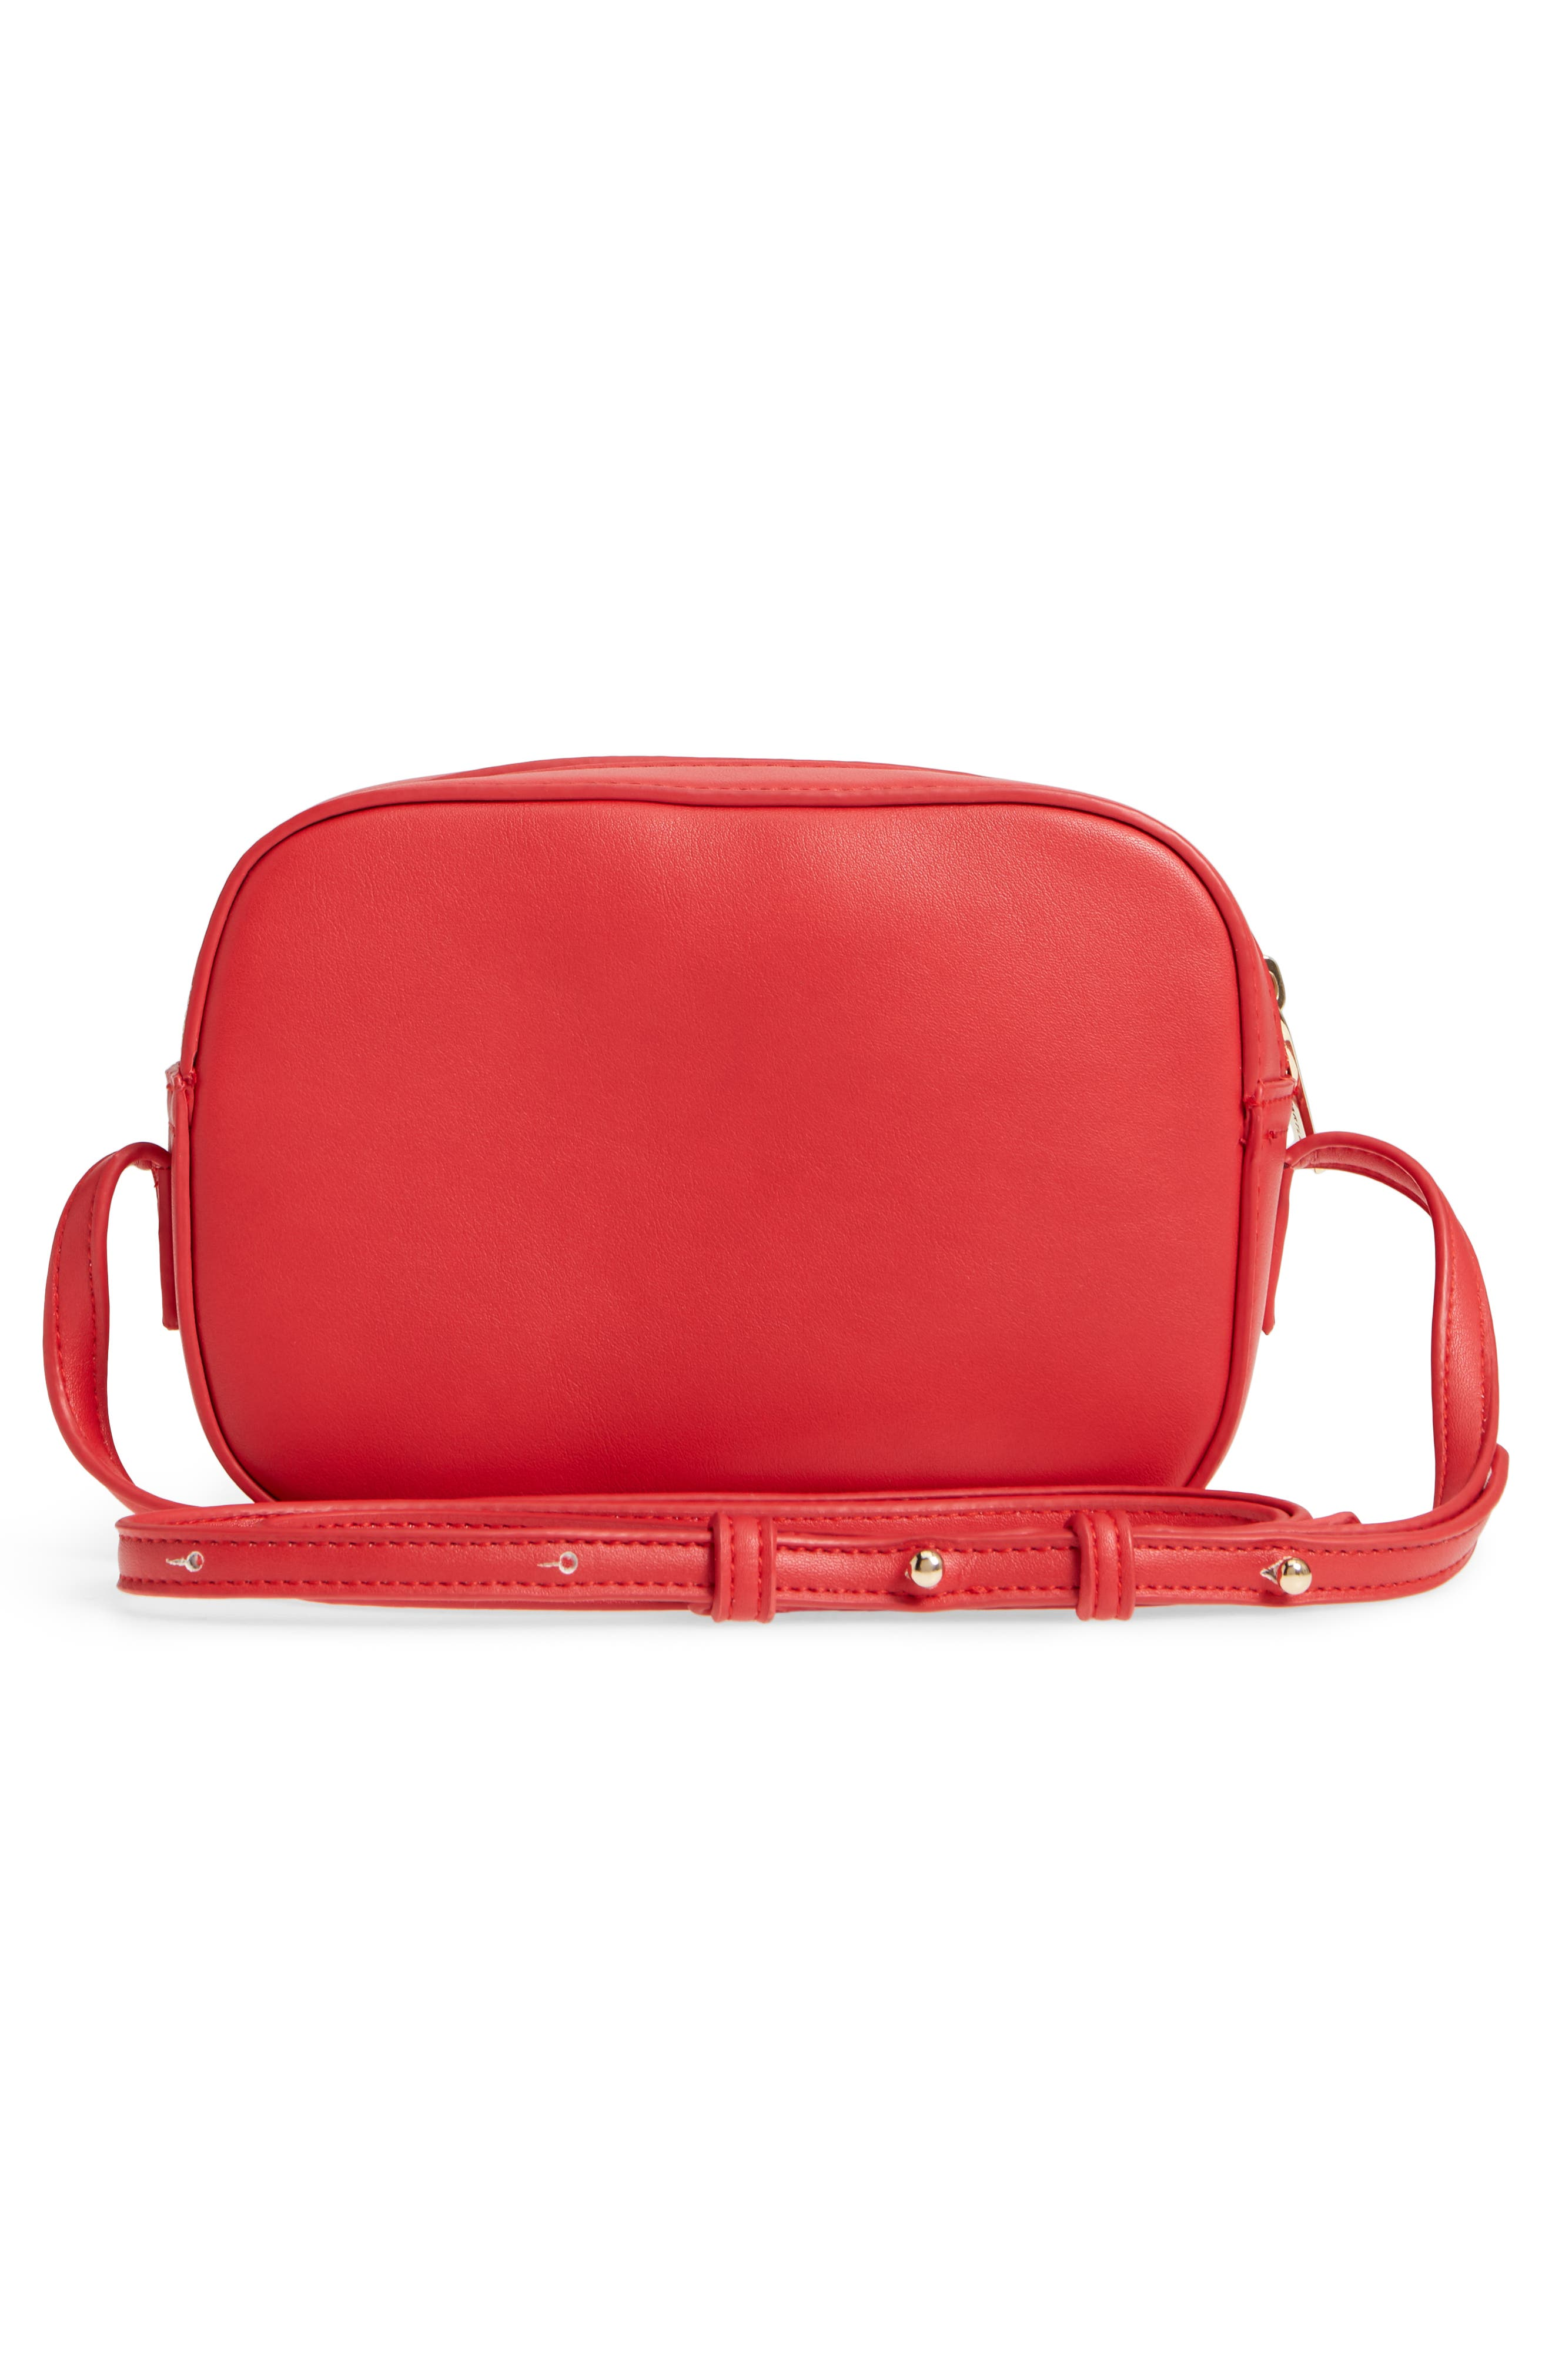 Faux Leather Box Bag,                             Alternate thumbnail 3, color,                             Red